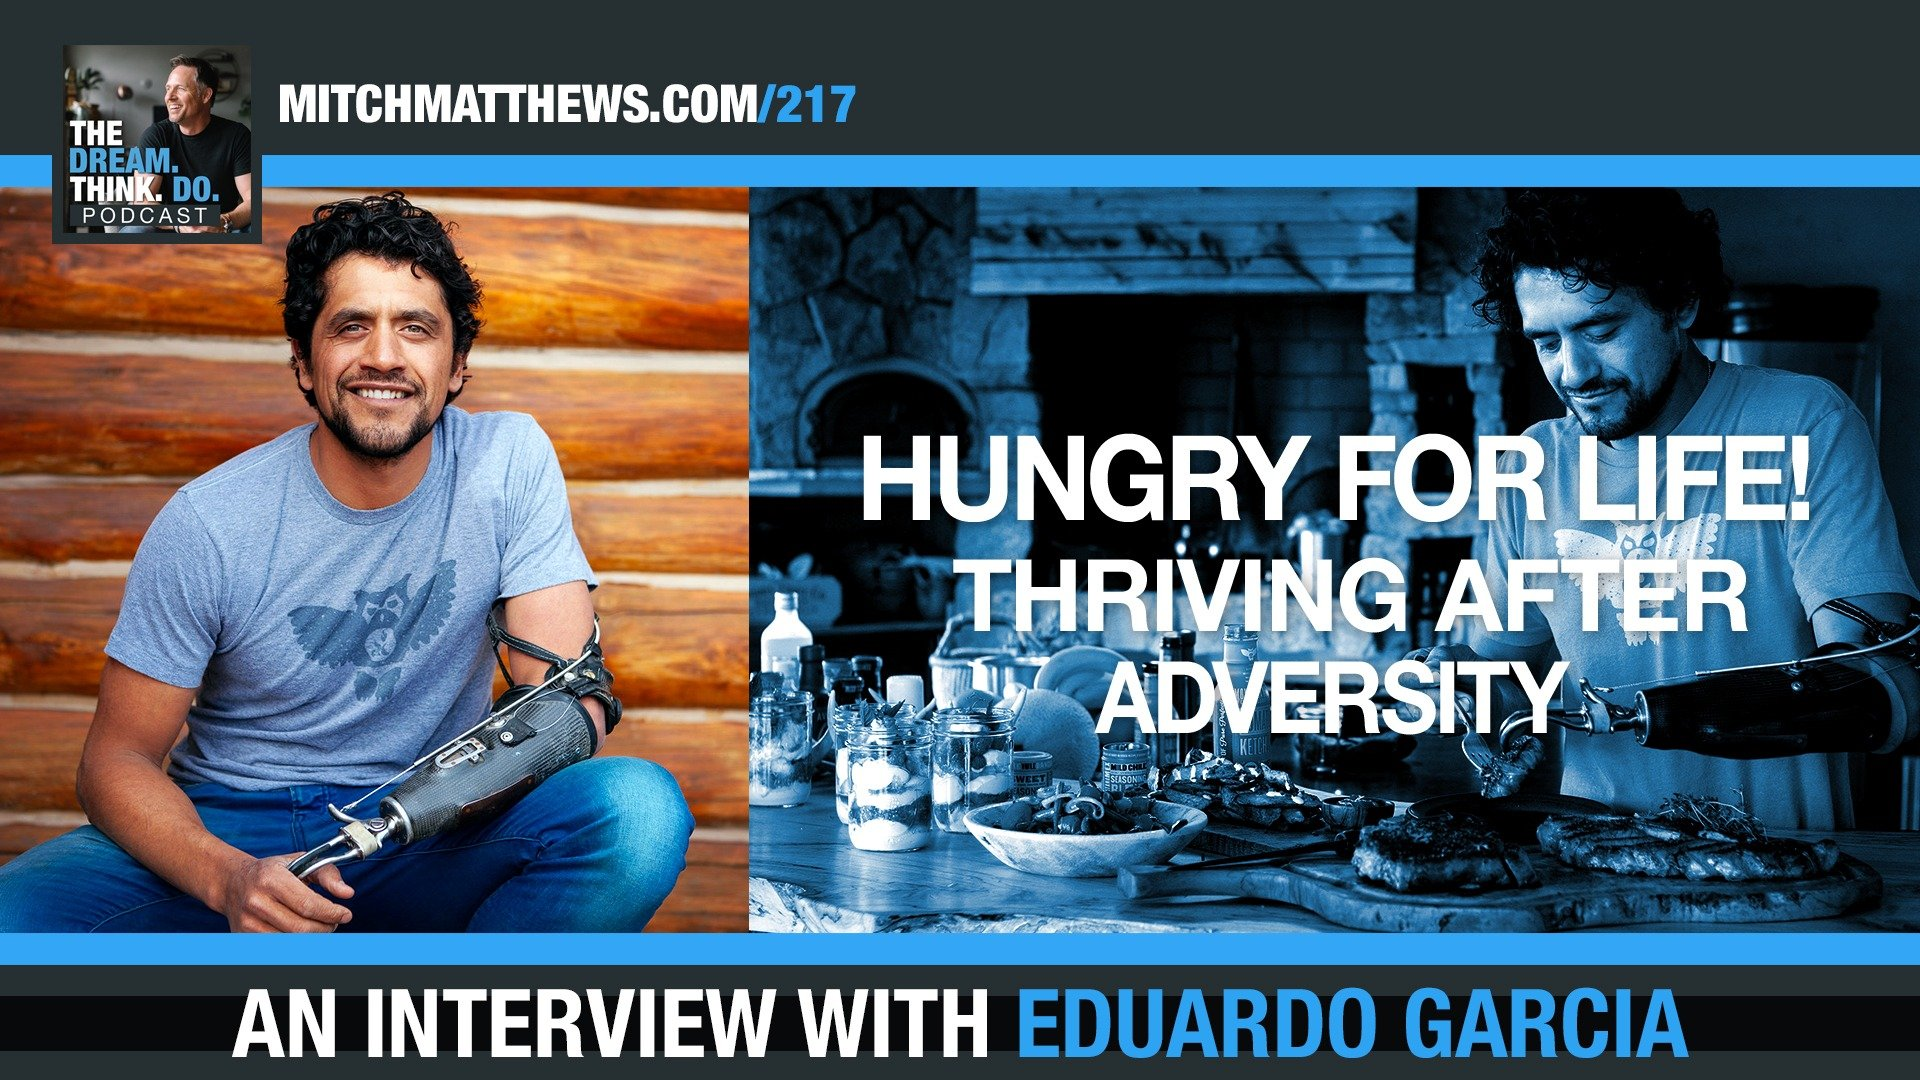 HUNGRY for LIFE! Thriving after adversity with Eduardo Garcia!